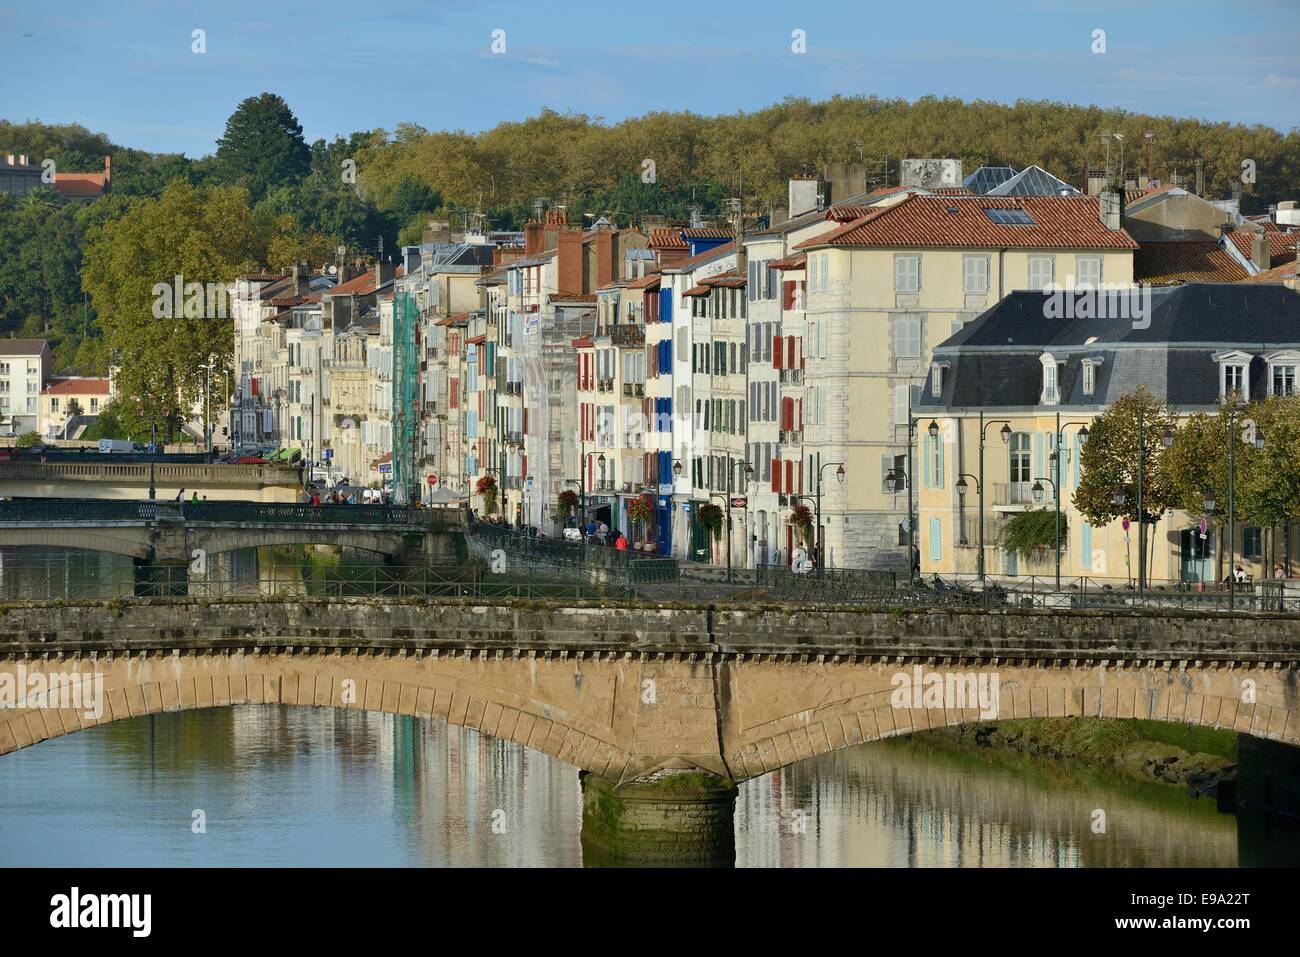 France, Atlantic Pyrenees, Pays Basque, Bayonne, the old town along the river Nive - Stock Image